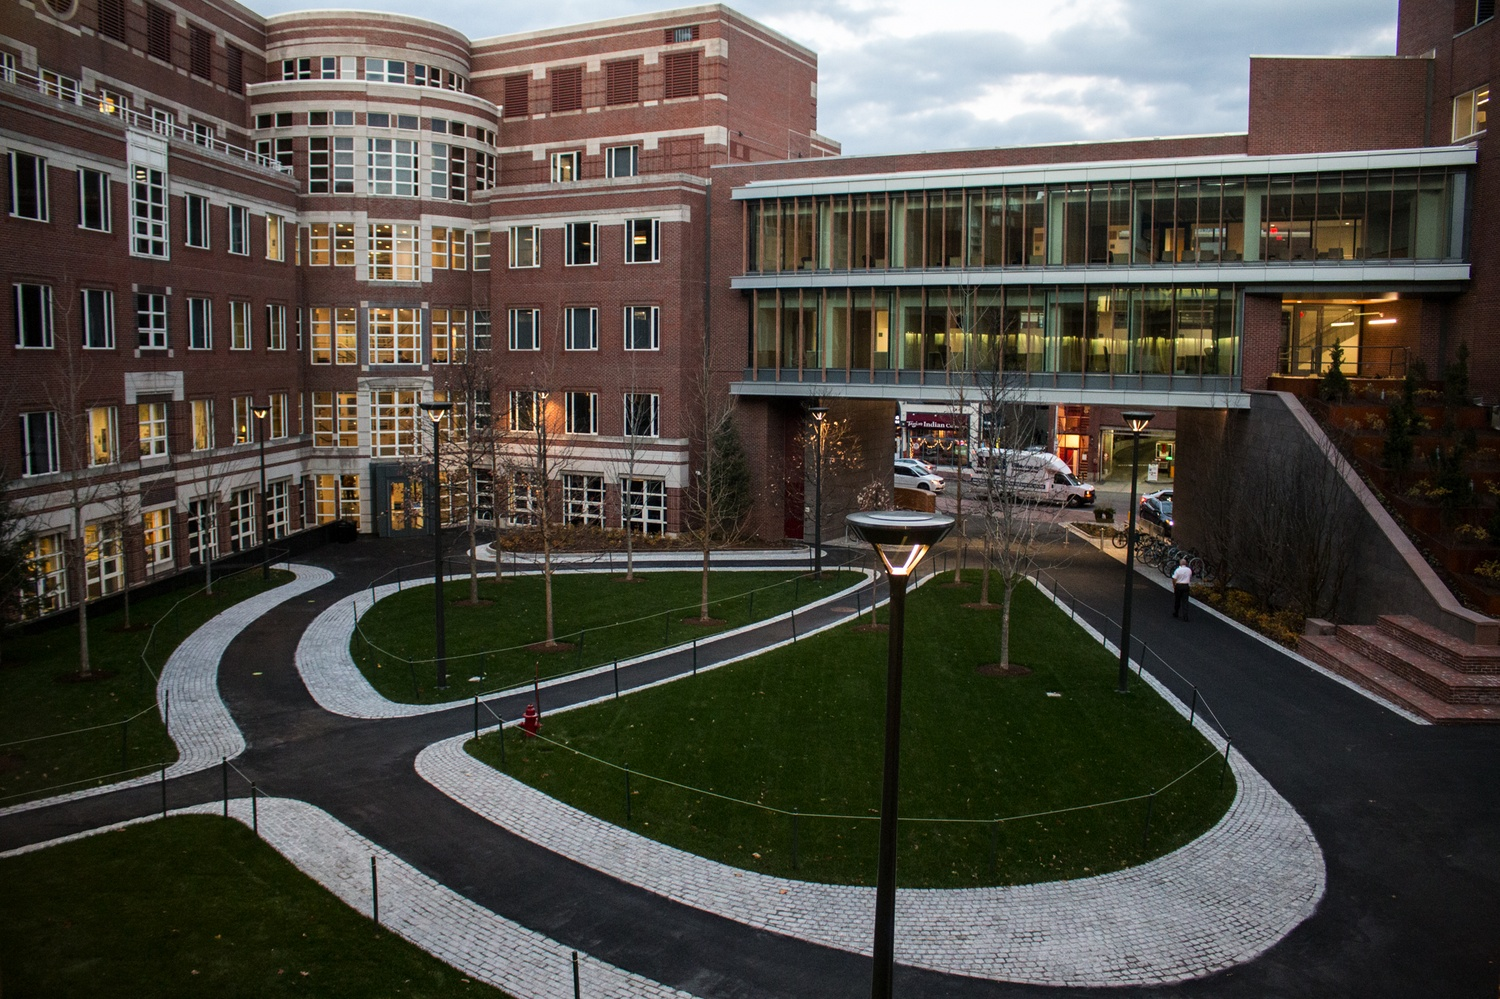 The Harvard Kennedy School, pictured in December 2017.